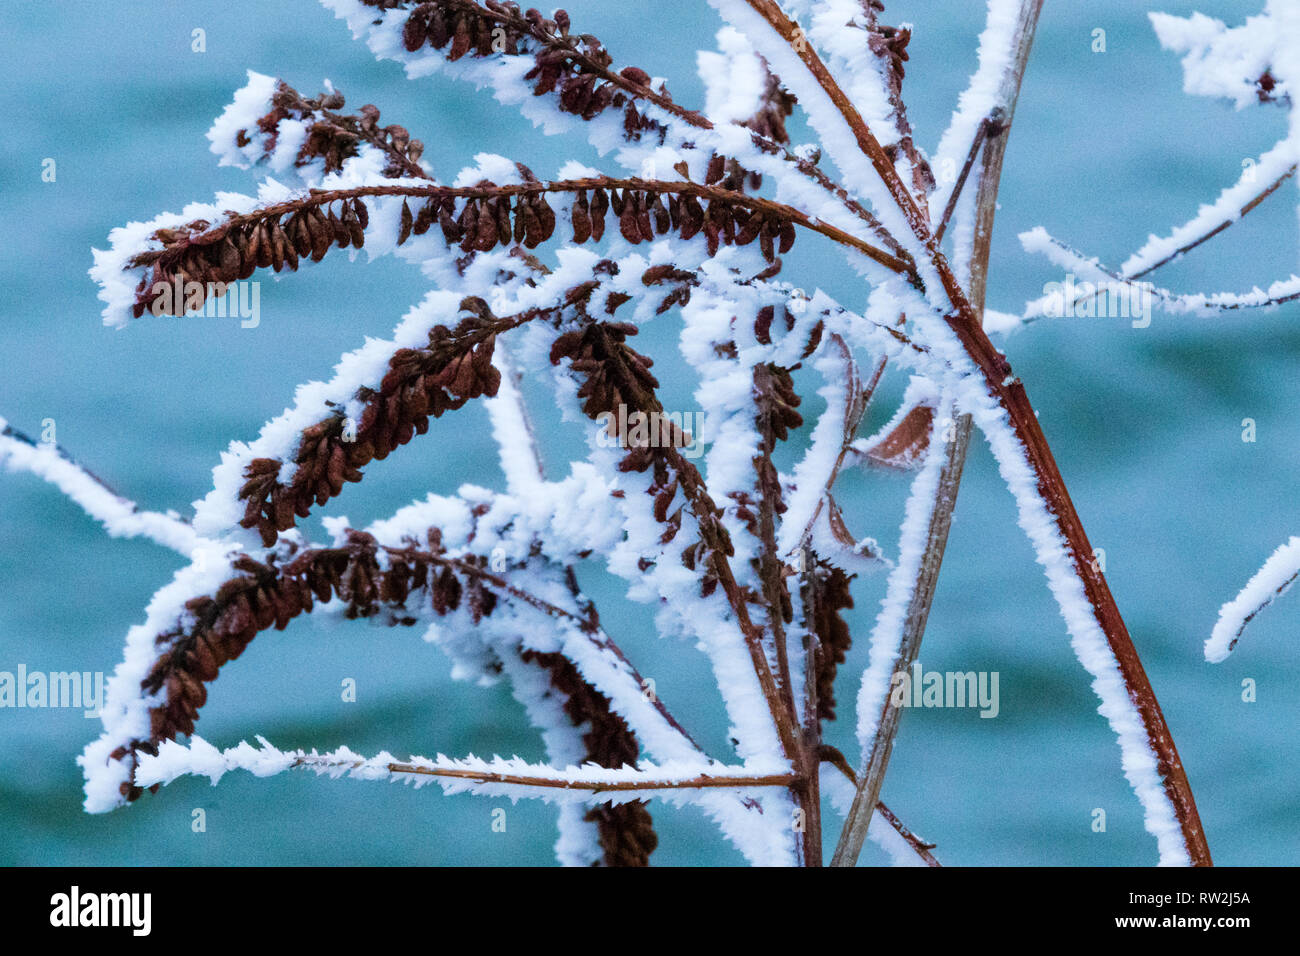 on a bitter cold day in Kansas, the vegetation is covered in a thick frost. Scott City, Kansas 2019 - Stock Image